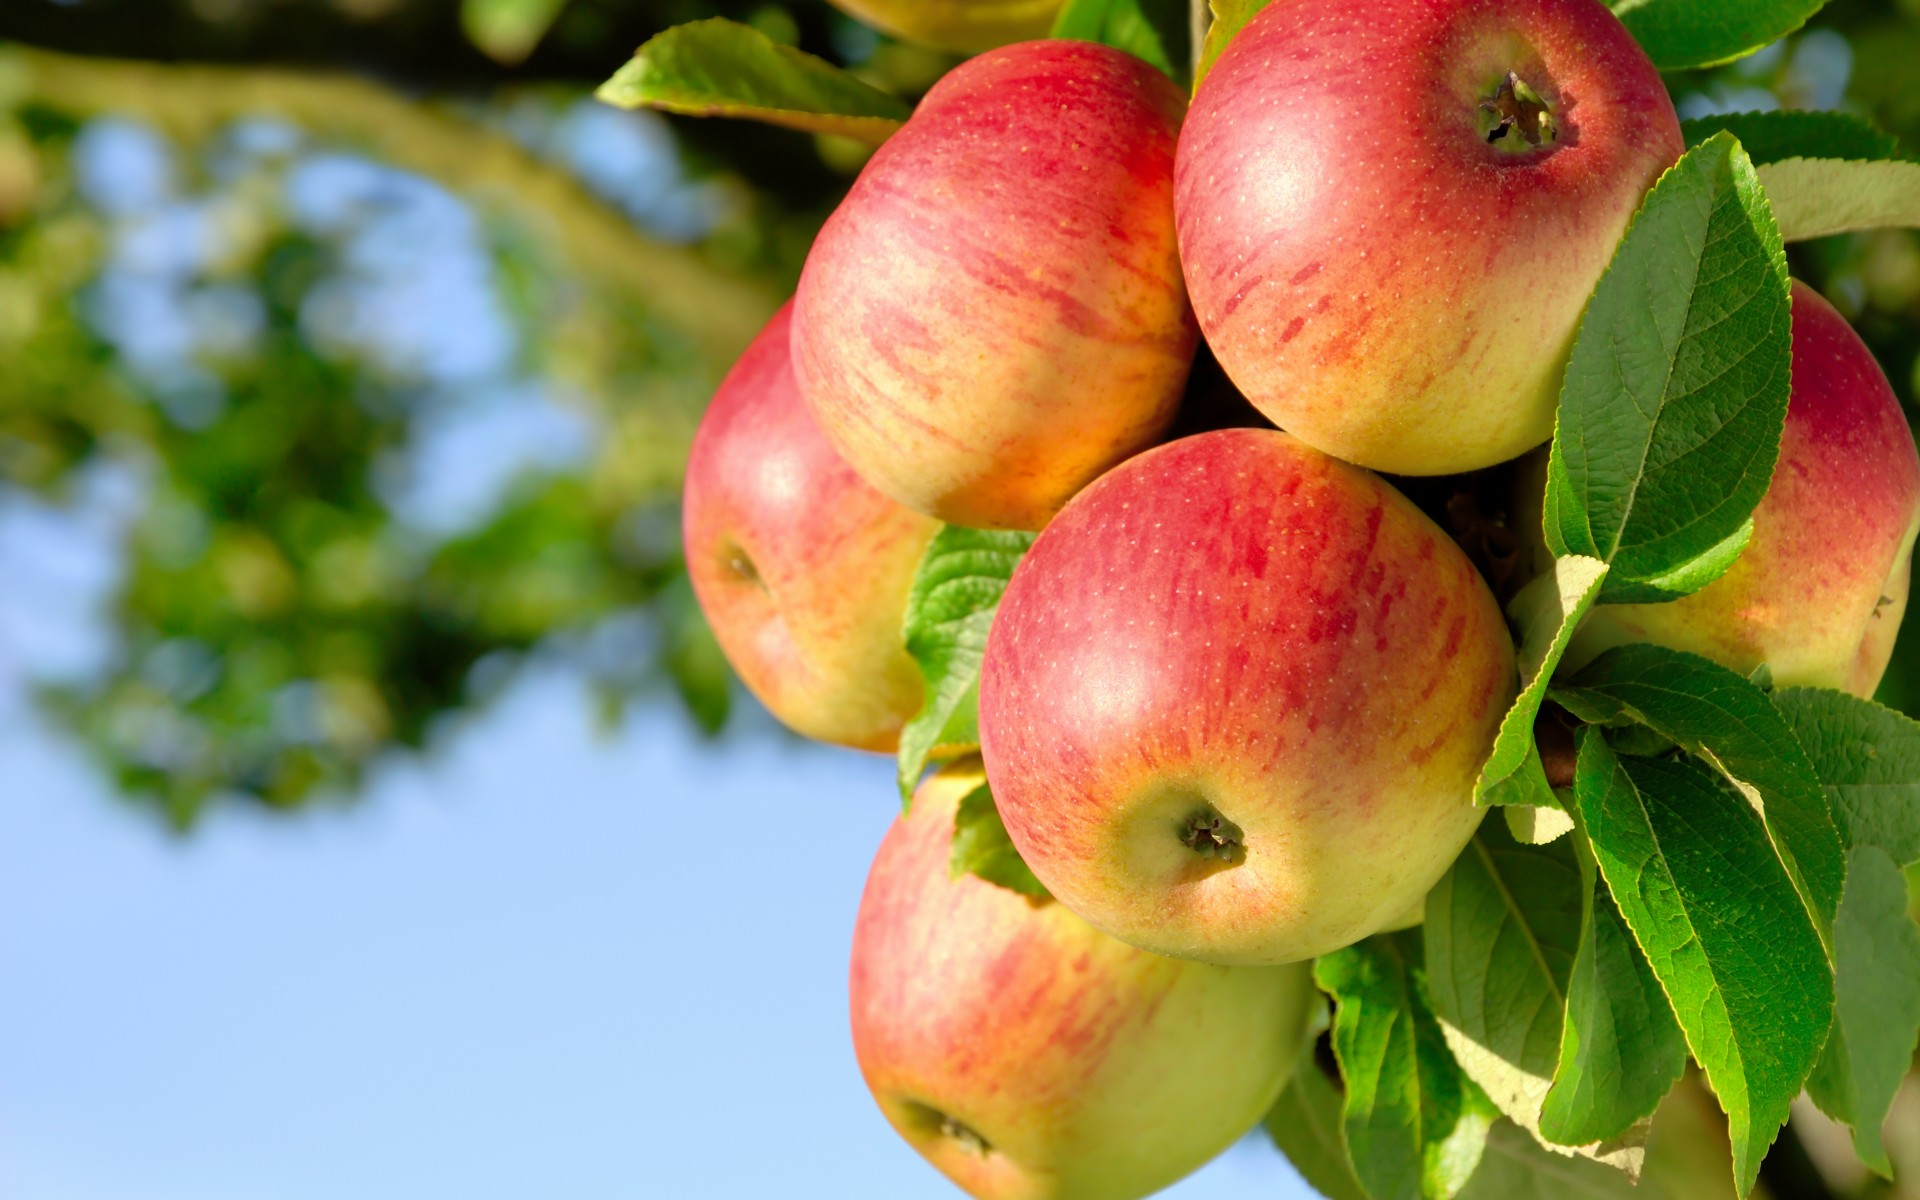 Fruit apple trees orchard nature wallpaper | 1920x1200 ...